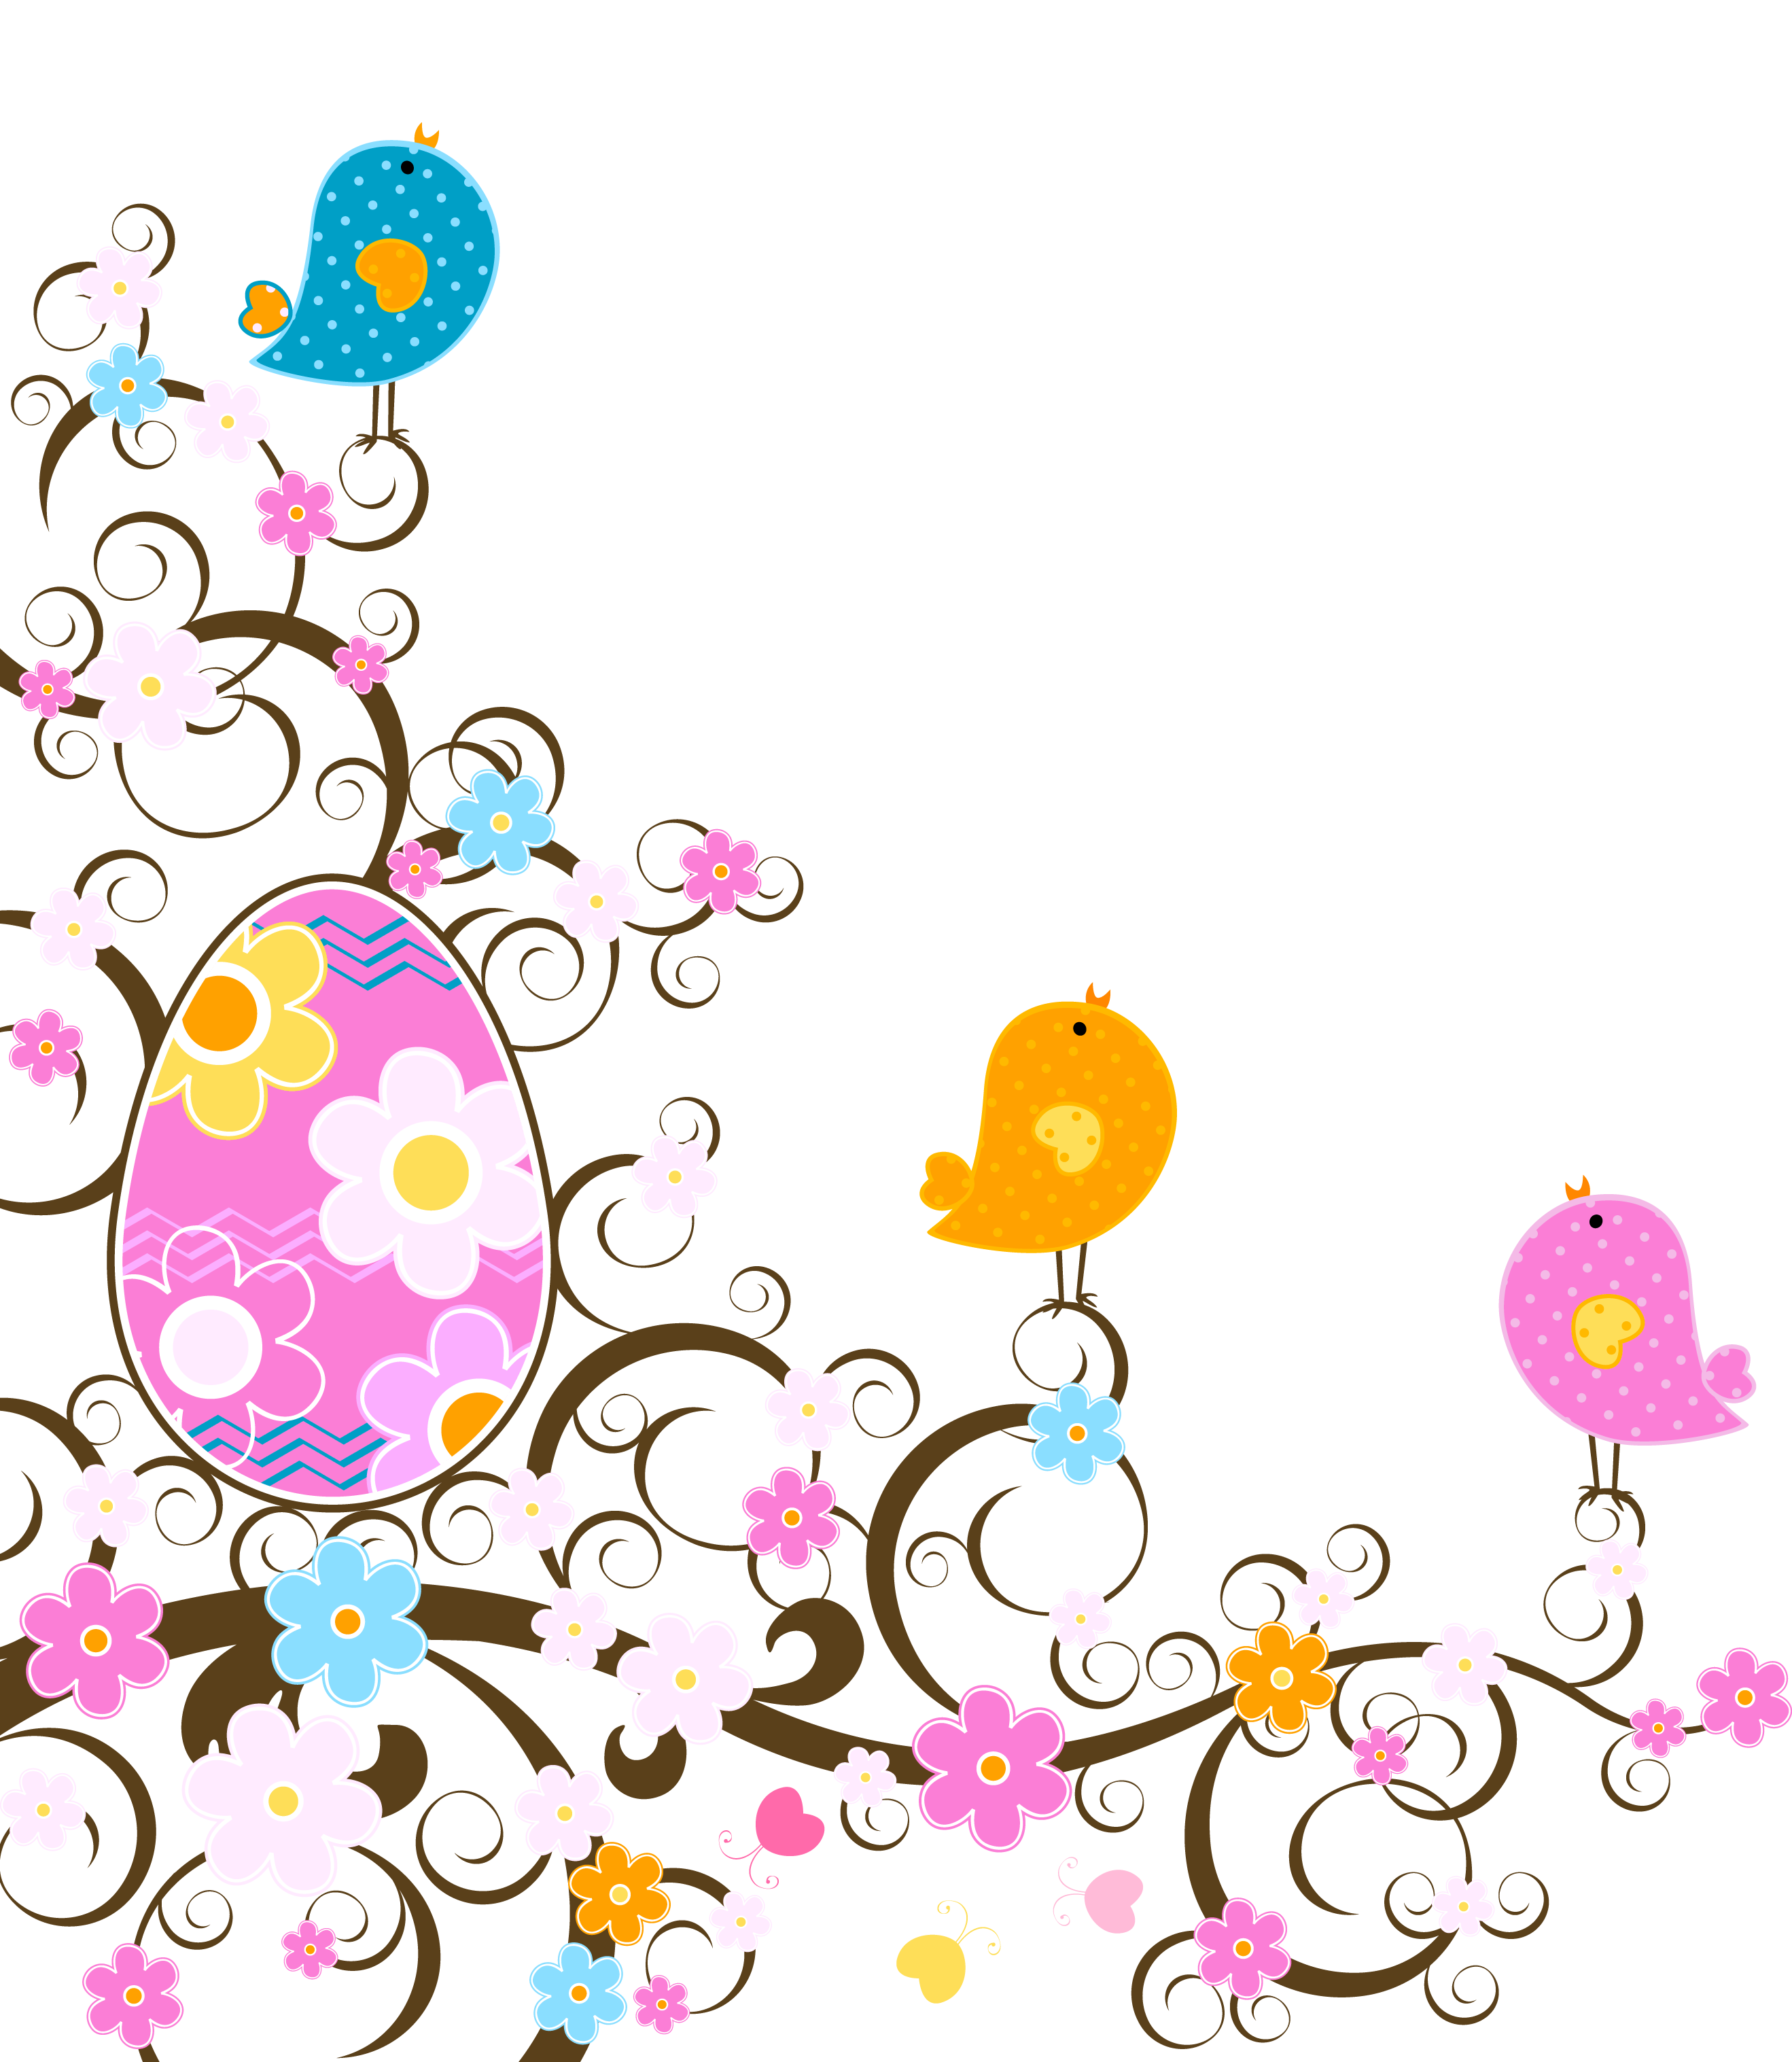 Easter Decoration with Flowers PNG Transparent Clipart.